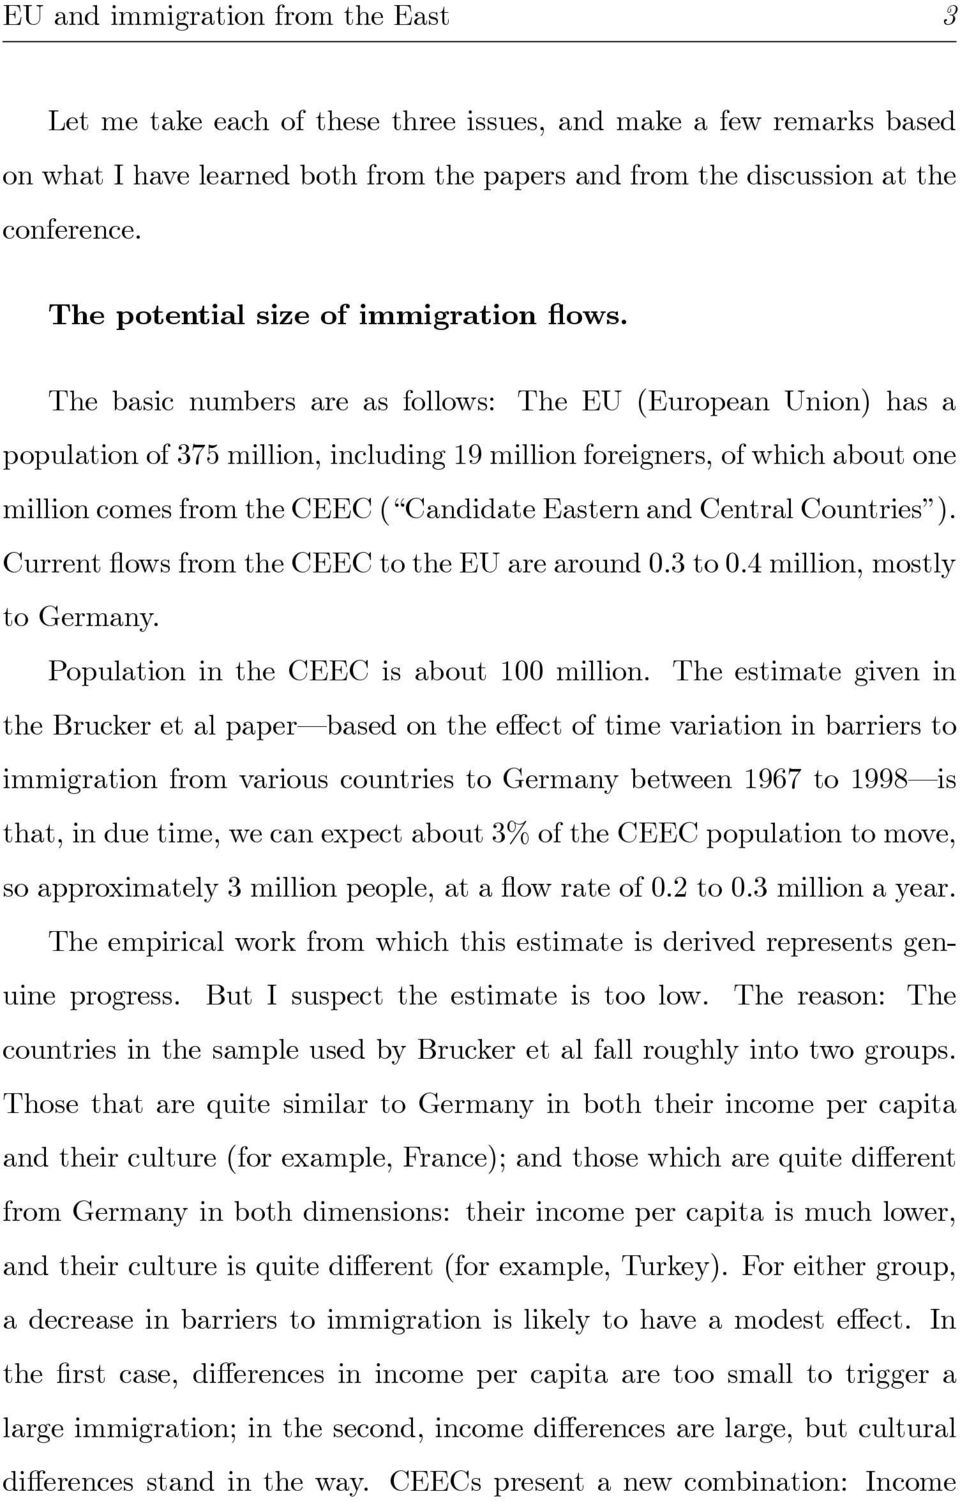 The basic numbers are as follows: The EU (European Union) has a population of 375 million, including 19 million foreigners, of which about one million comes from the CEEC ( Candidate Eastern and